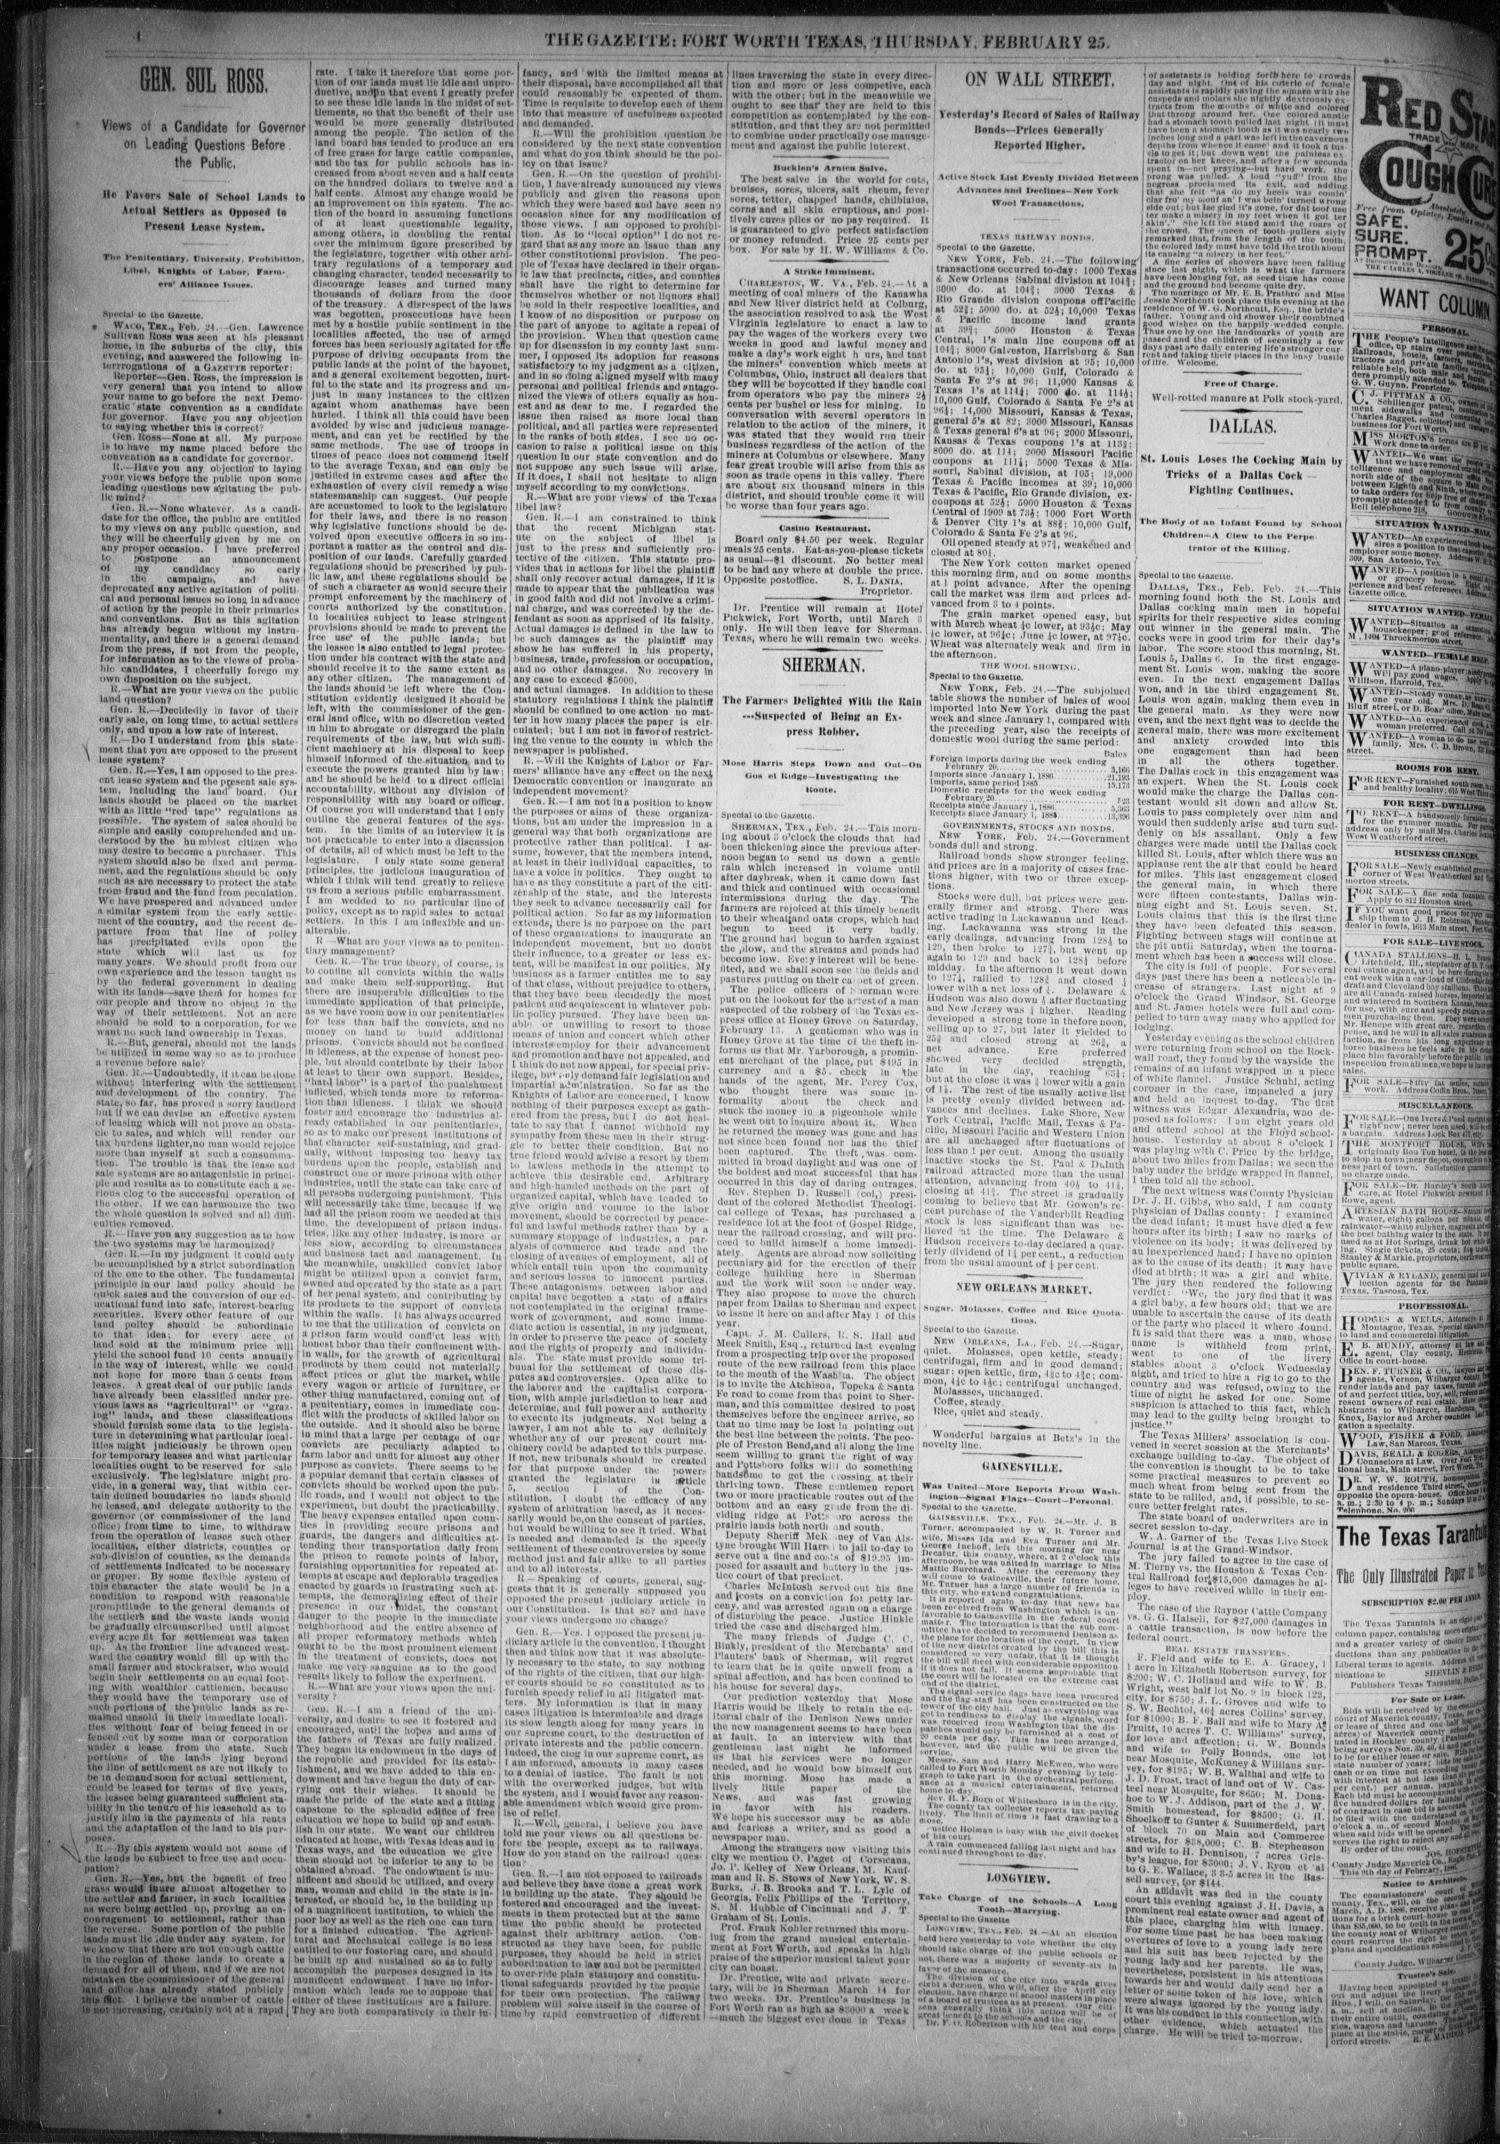 Fort Worth Daily Gazette. (Fort Worth, Tex.), Vol. 11, No. 210, Ed. 1, Thursday, February 25, 1886                                                                                                      [Sequence #]: 4 of 8